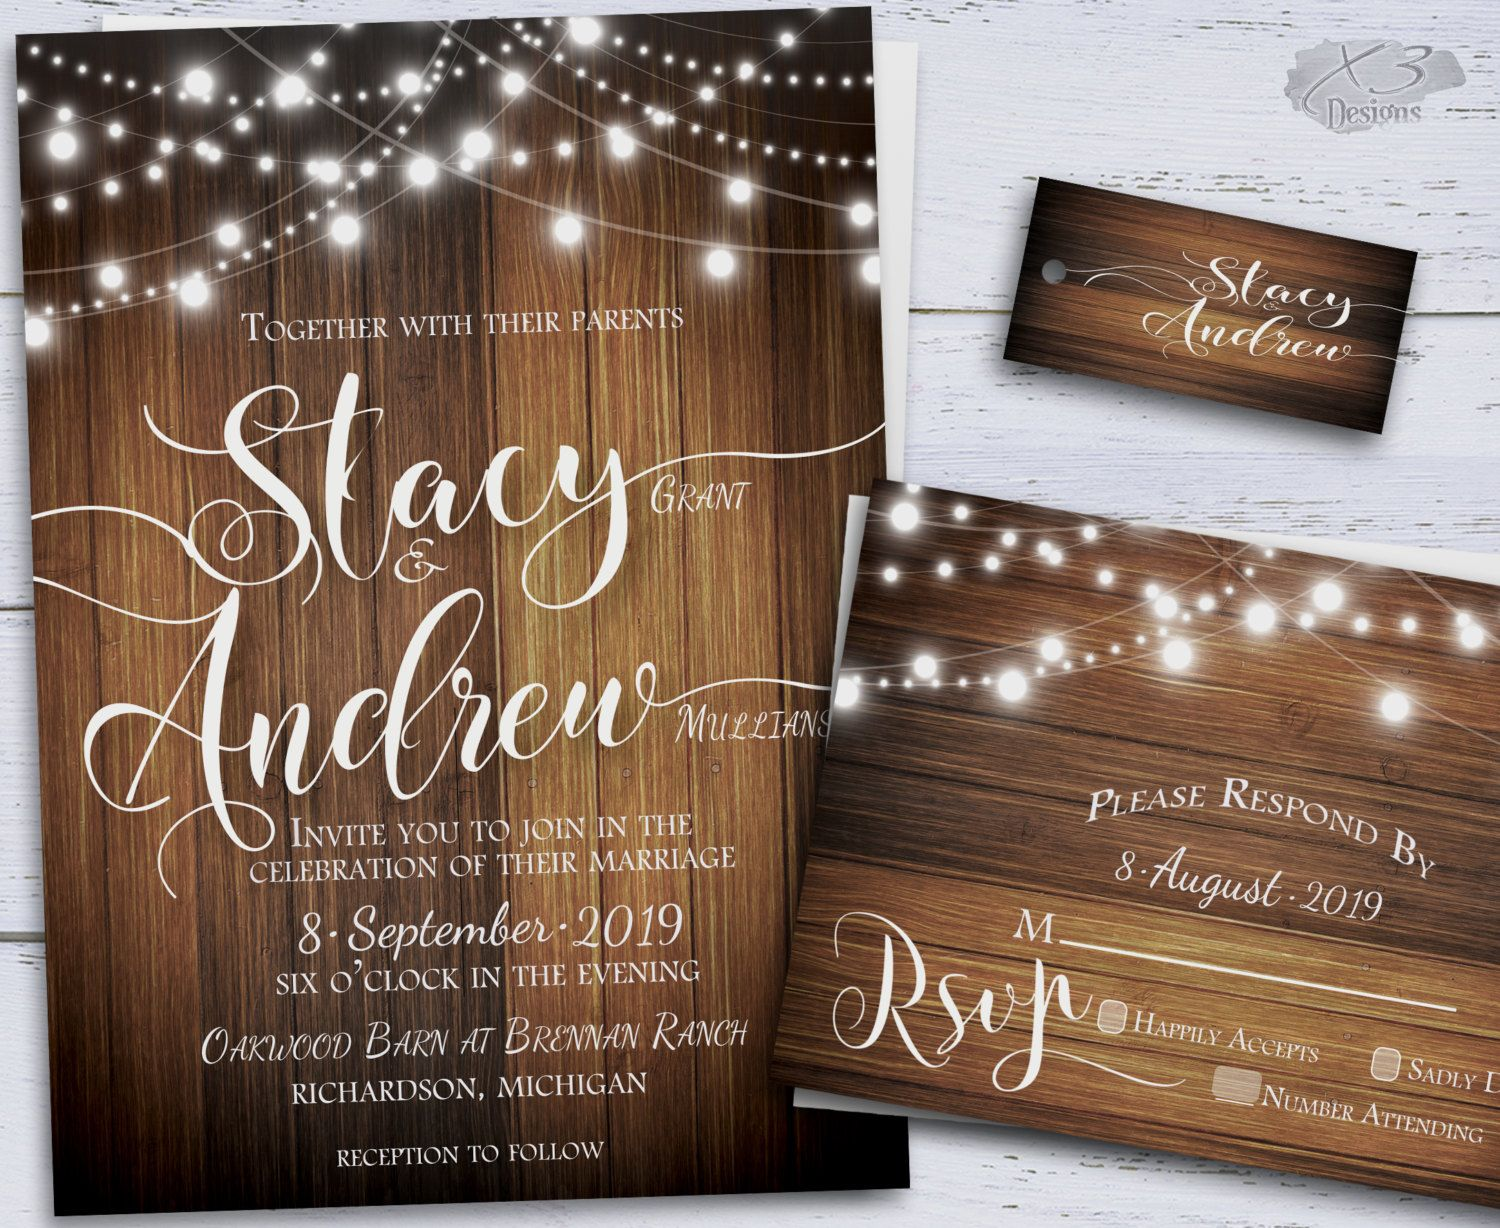 second wedding invitations wording%0A Country Wedding Invitation Set Barn Wedding Invitation Rustic Wedding  Invitation Wood Wedding Invitation Light Strings Wedding Invitation    Country fall